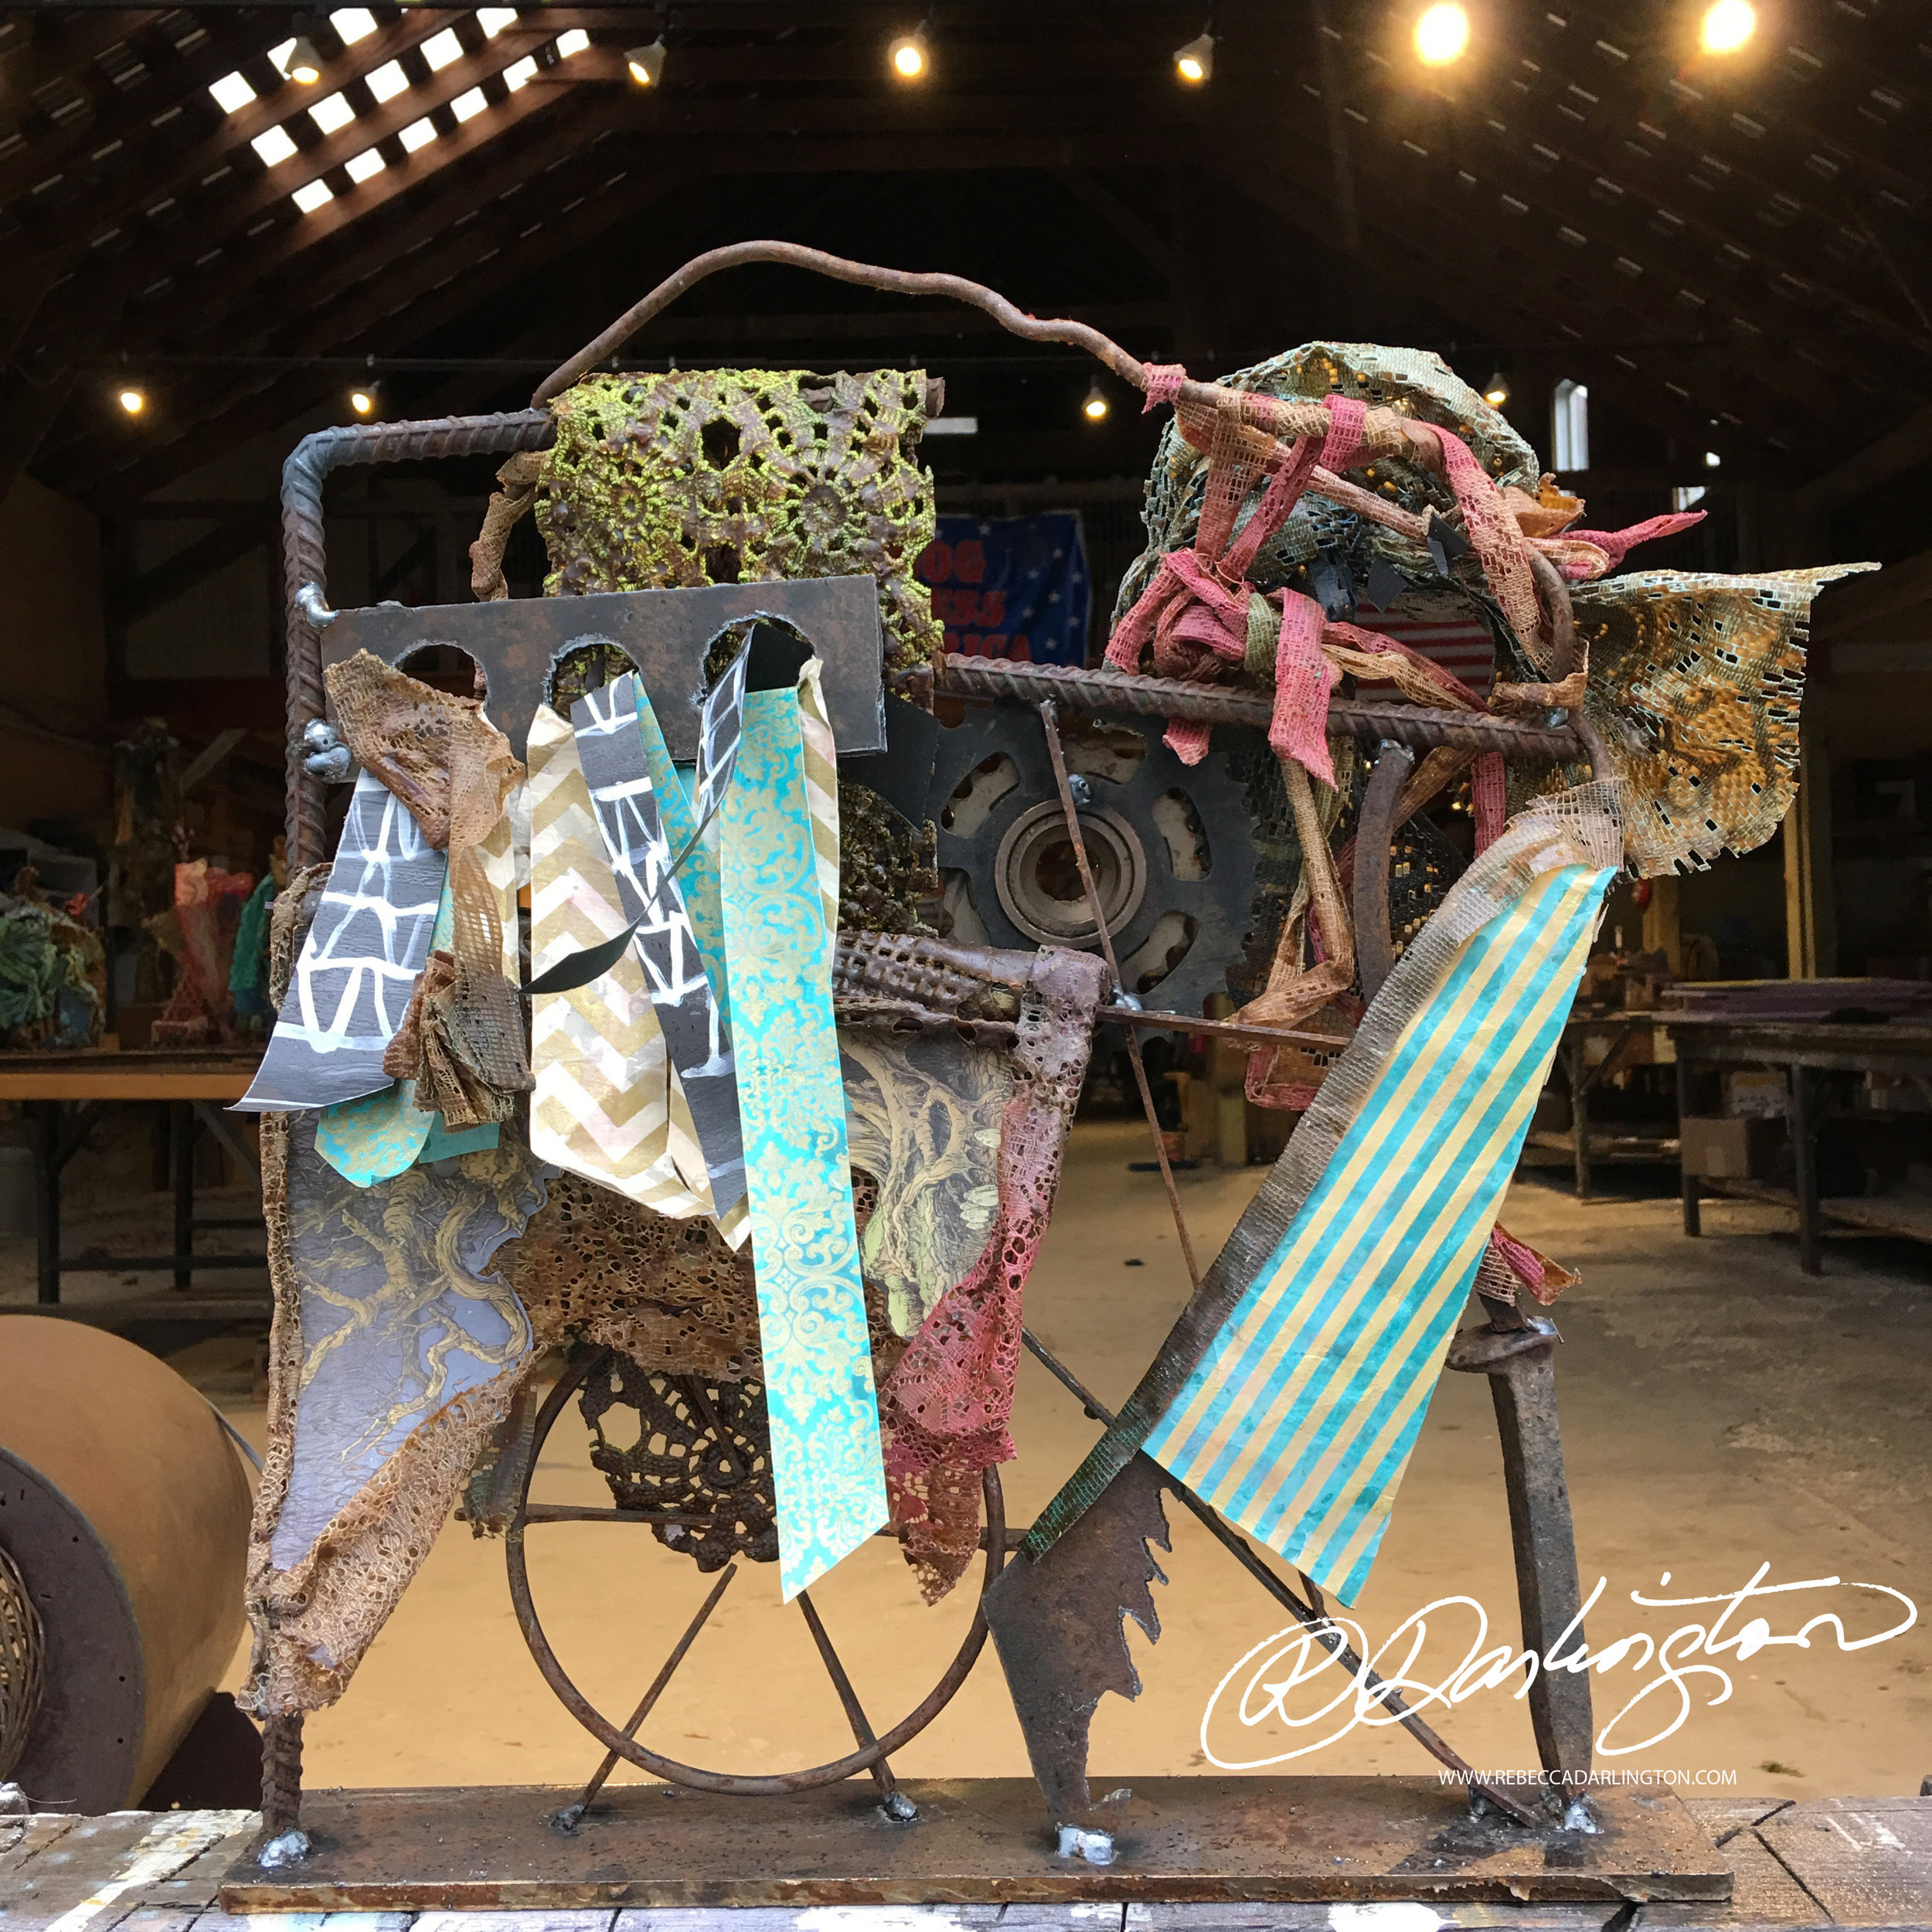 Sculpture Artist Displaying work in New York City this Weekend at an Art Event Gallery and Museum